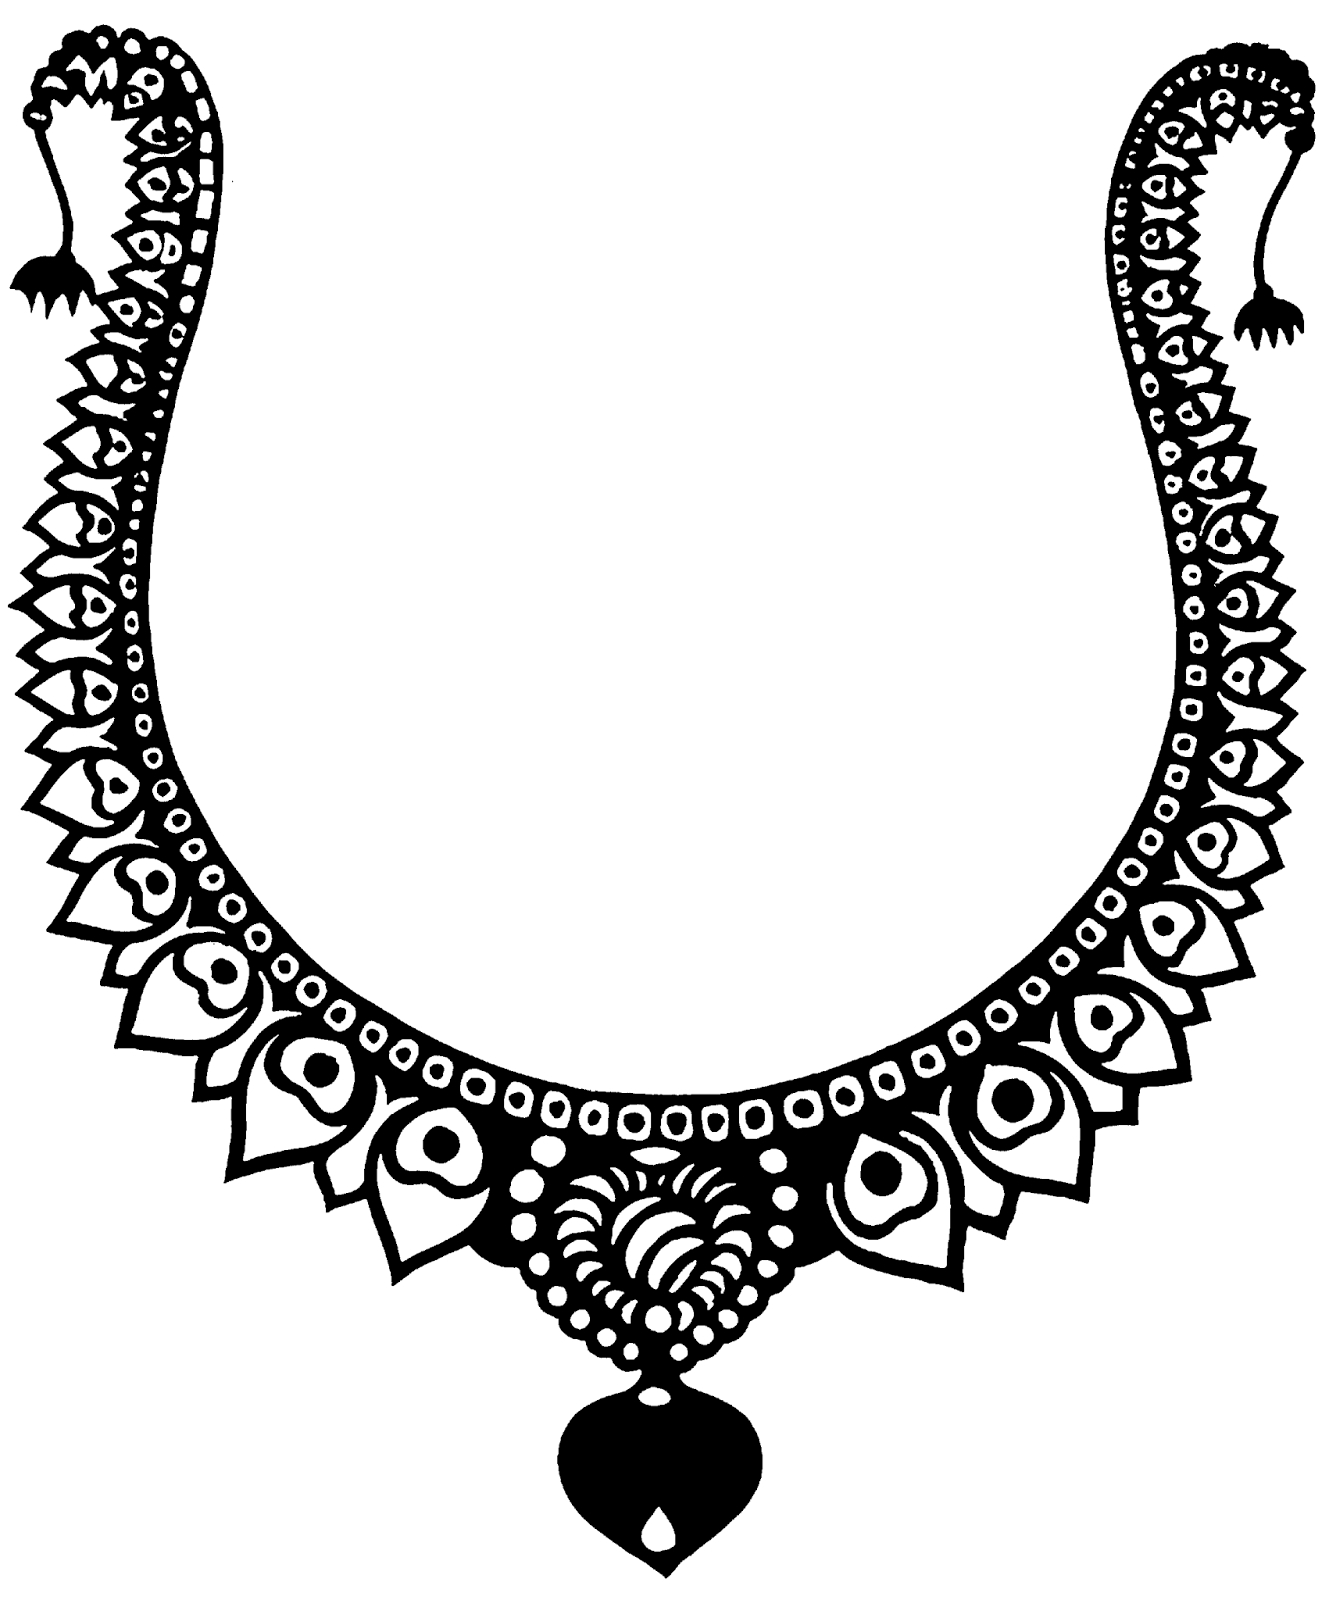 Jewelry Clipart Jewelry Transparent Free For Download On Webstockreview